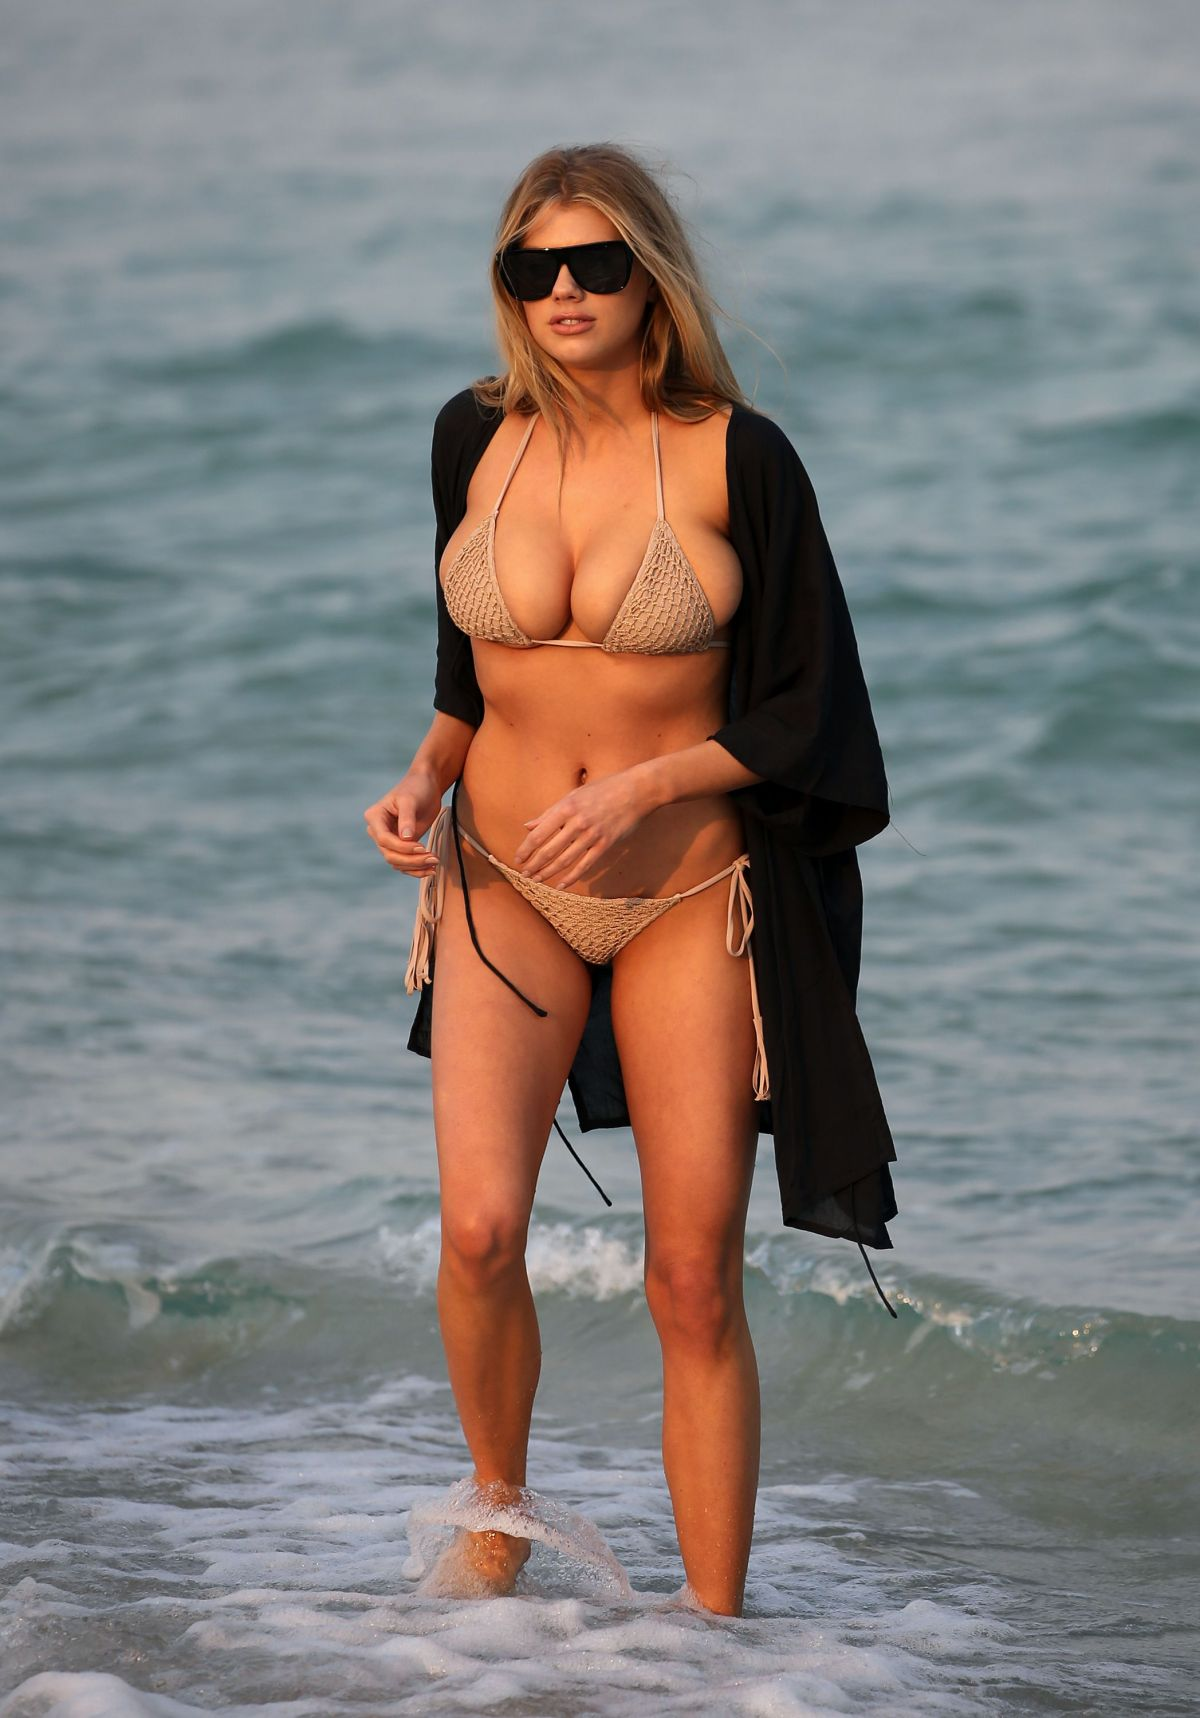 charlotte-mckinney-in-bikini-at-a-beach-in-miami-02-16-2017_25.jpg